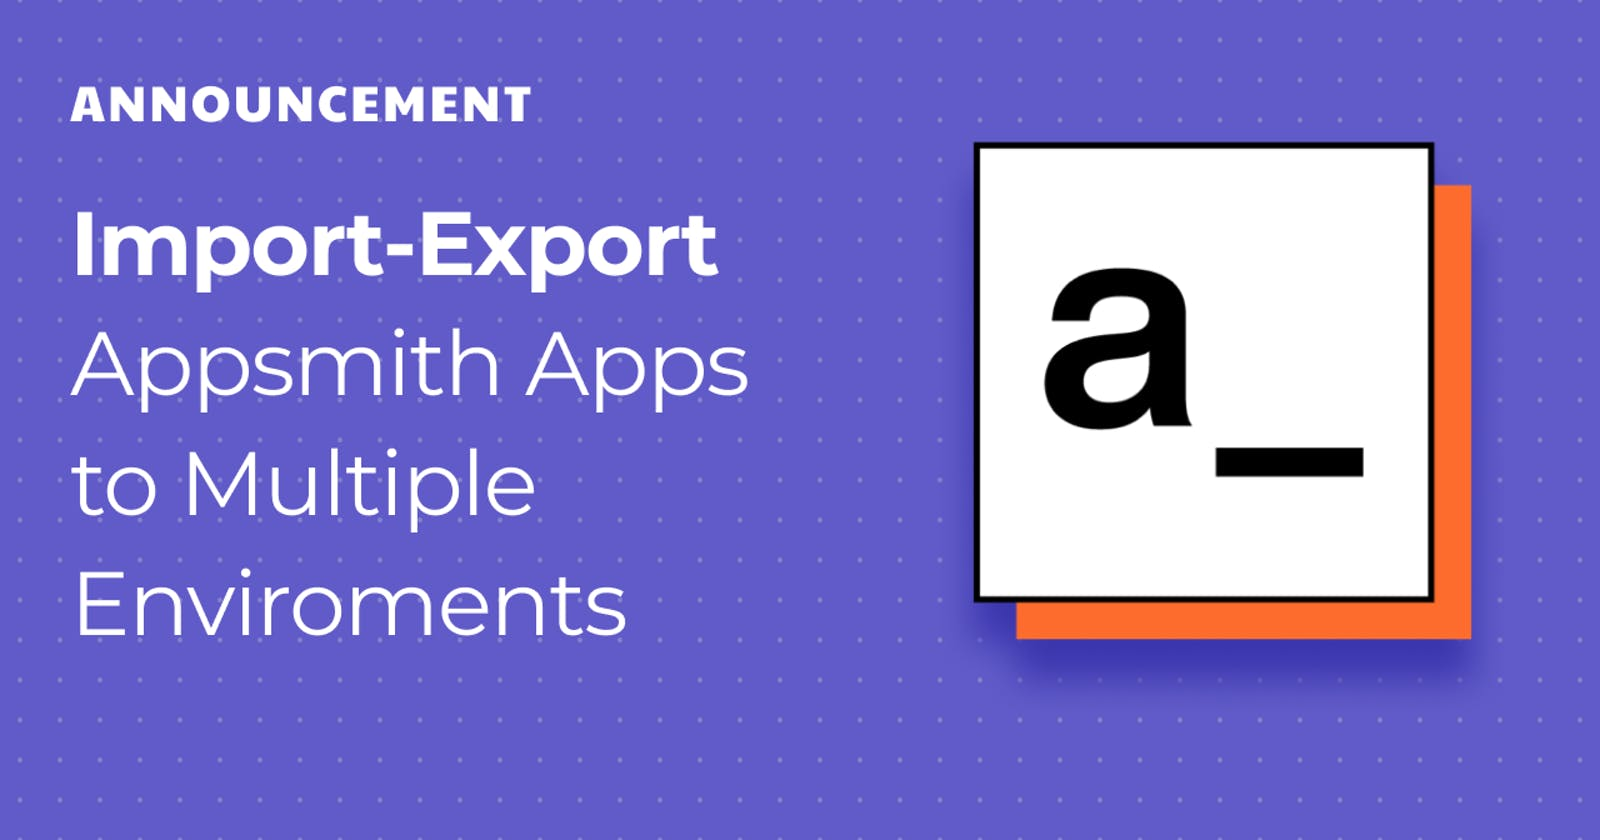 Announcing the Import-Export Feature for Appsmith Applications